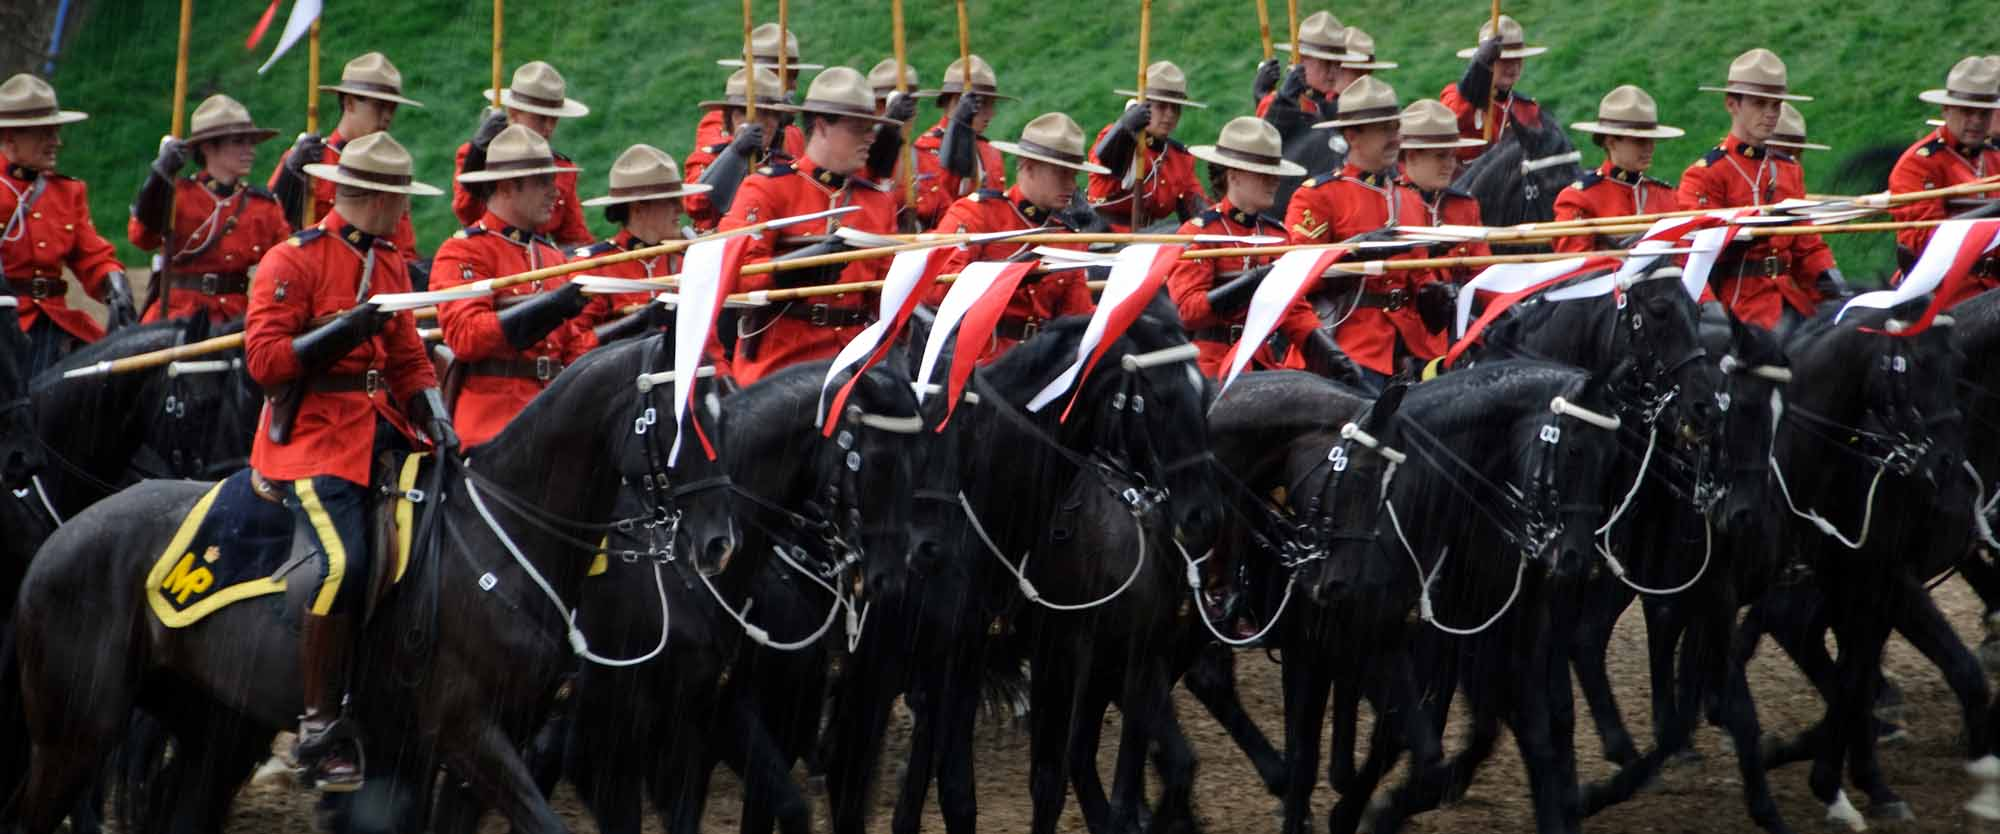 the royal canadian mounted police The royal united services institute and the high commission of canada in the uk are proud to present a discussion with glenn wright, historian for the royal canadian mountain police (rcmp) and clive emsley, emeritus.